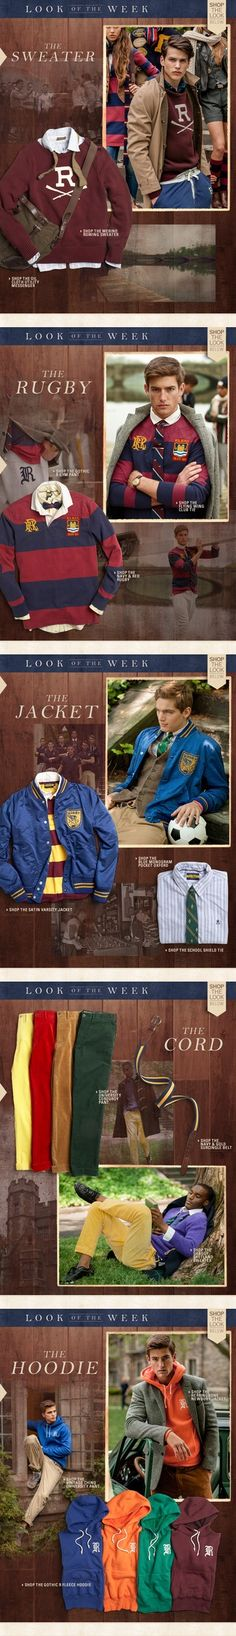 Shop the great 'Look of the Week' at Rugby Ralph Lauren.